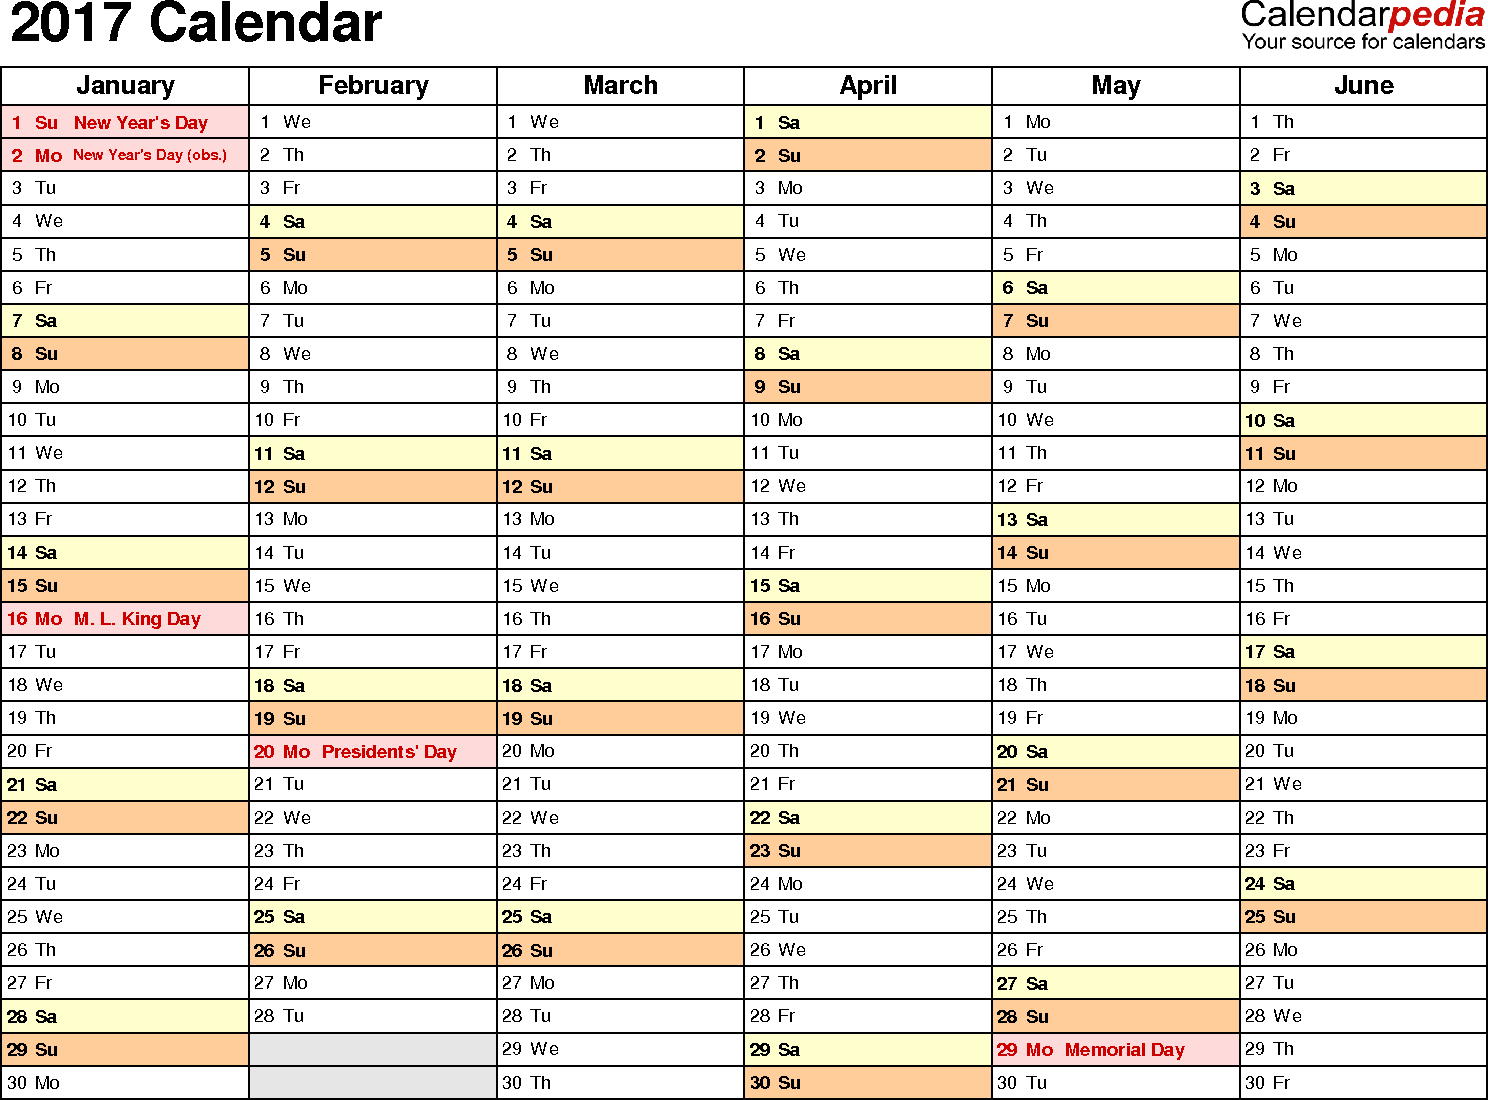 Ediblewildsus  Pretty  Calendar  Download  Free Printable Excel Templates Xls With Fetching Template   Calendar For Excel Months Horizontally  Pages Landscape Orientation With Comely Two If Statements In Excel Also How To Calculate On Excel In Addition How To Make Cells Bigger In Excel And How To Insert Hyperlink In Excel As Well As Excel Refresh Formulas Additionally Edit Excel Drop Down List From Calendarpediacom With Ediblewildsus  Fetching  Calendar  Download  Free Printable Excel Templates Xls With Comely Template   Calendar For Excel Months Horizontally  Pages Landscape Orientation And Pretty Two If Statements In Excel Also How To Calculate On Excel In Addition How To Make Cells Bigger In Excel From Calendarpediacom